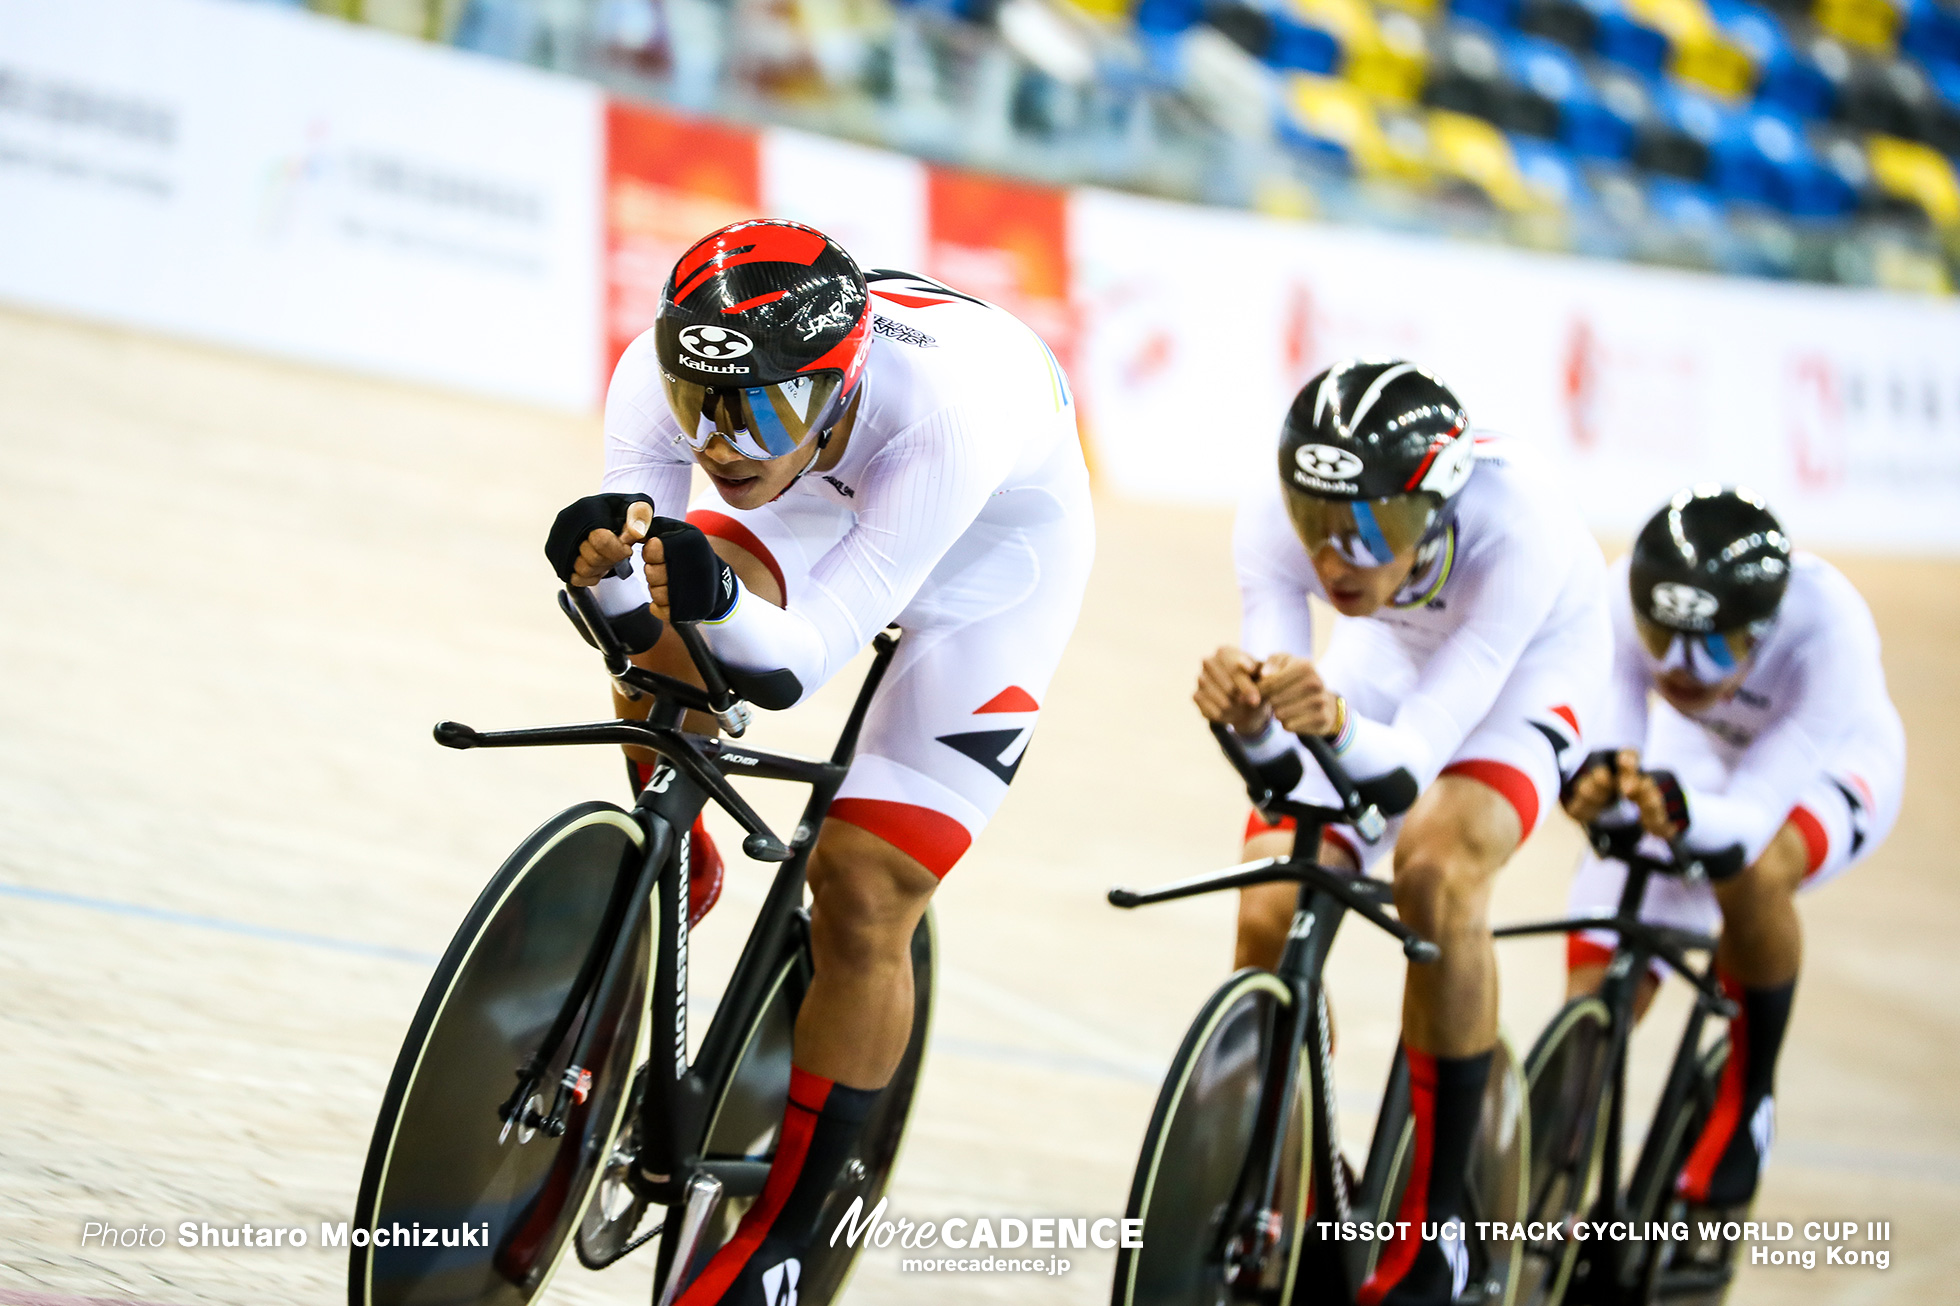 Men's Team Pursuit / TISSOT UCI TRACK CYCLING WORLD CUP III, Hong Kong, 沢田桂太郎 窪木一茂 今村駿介 近谷涼